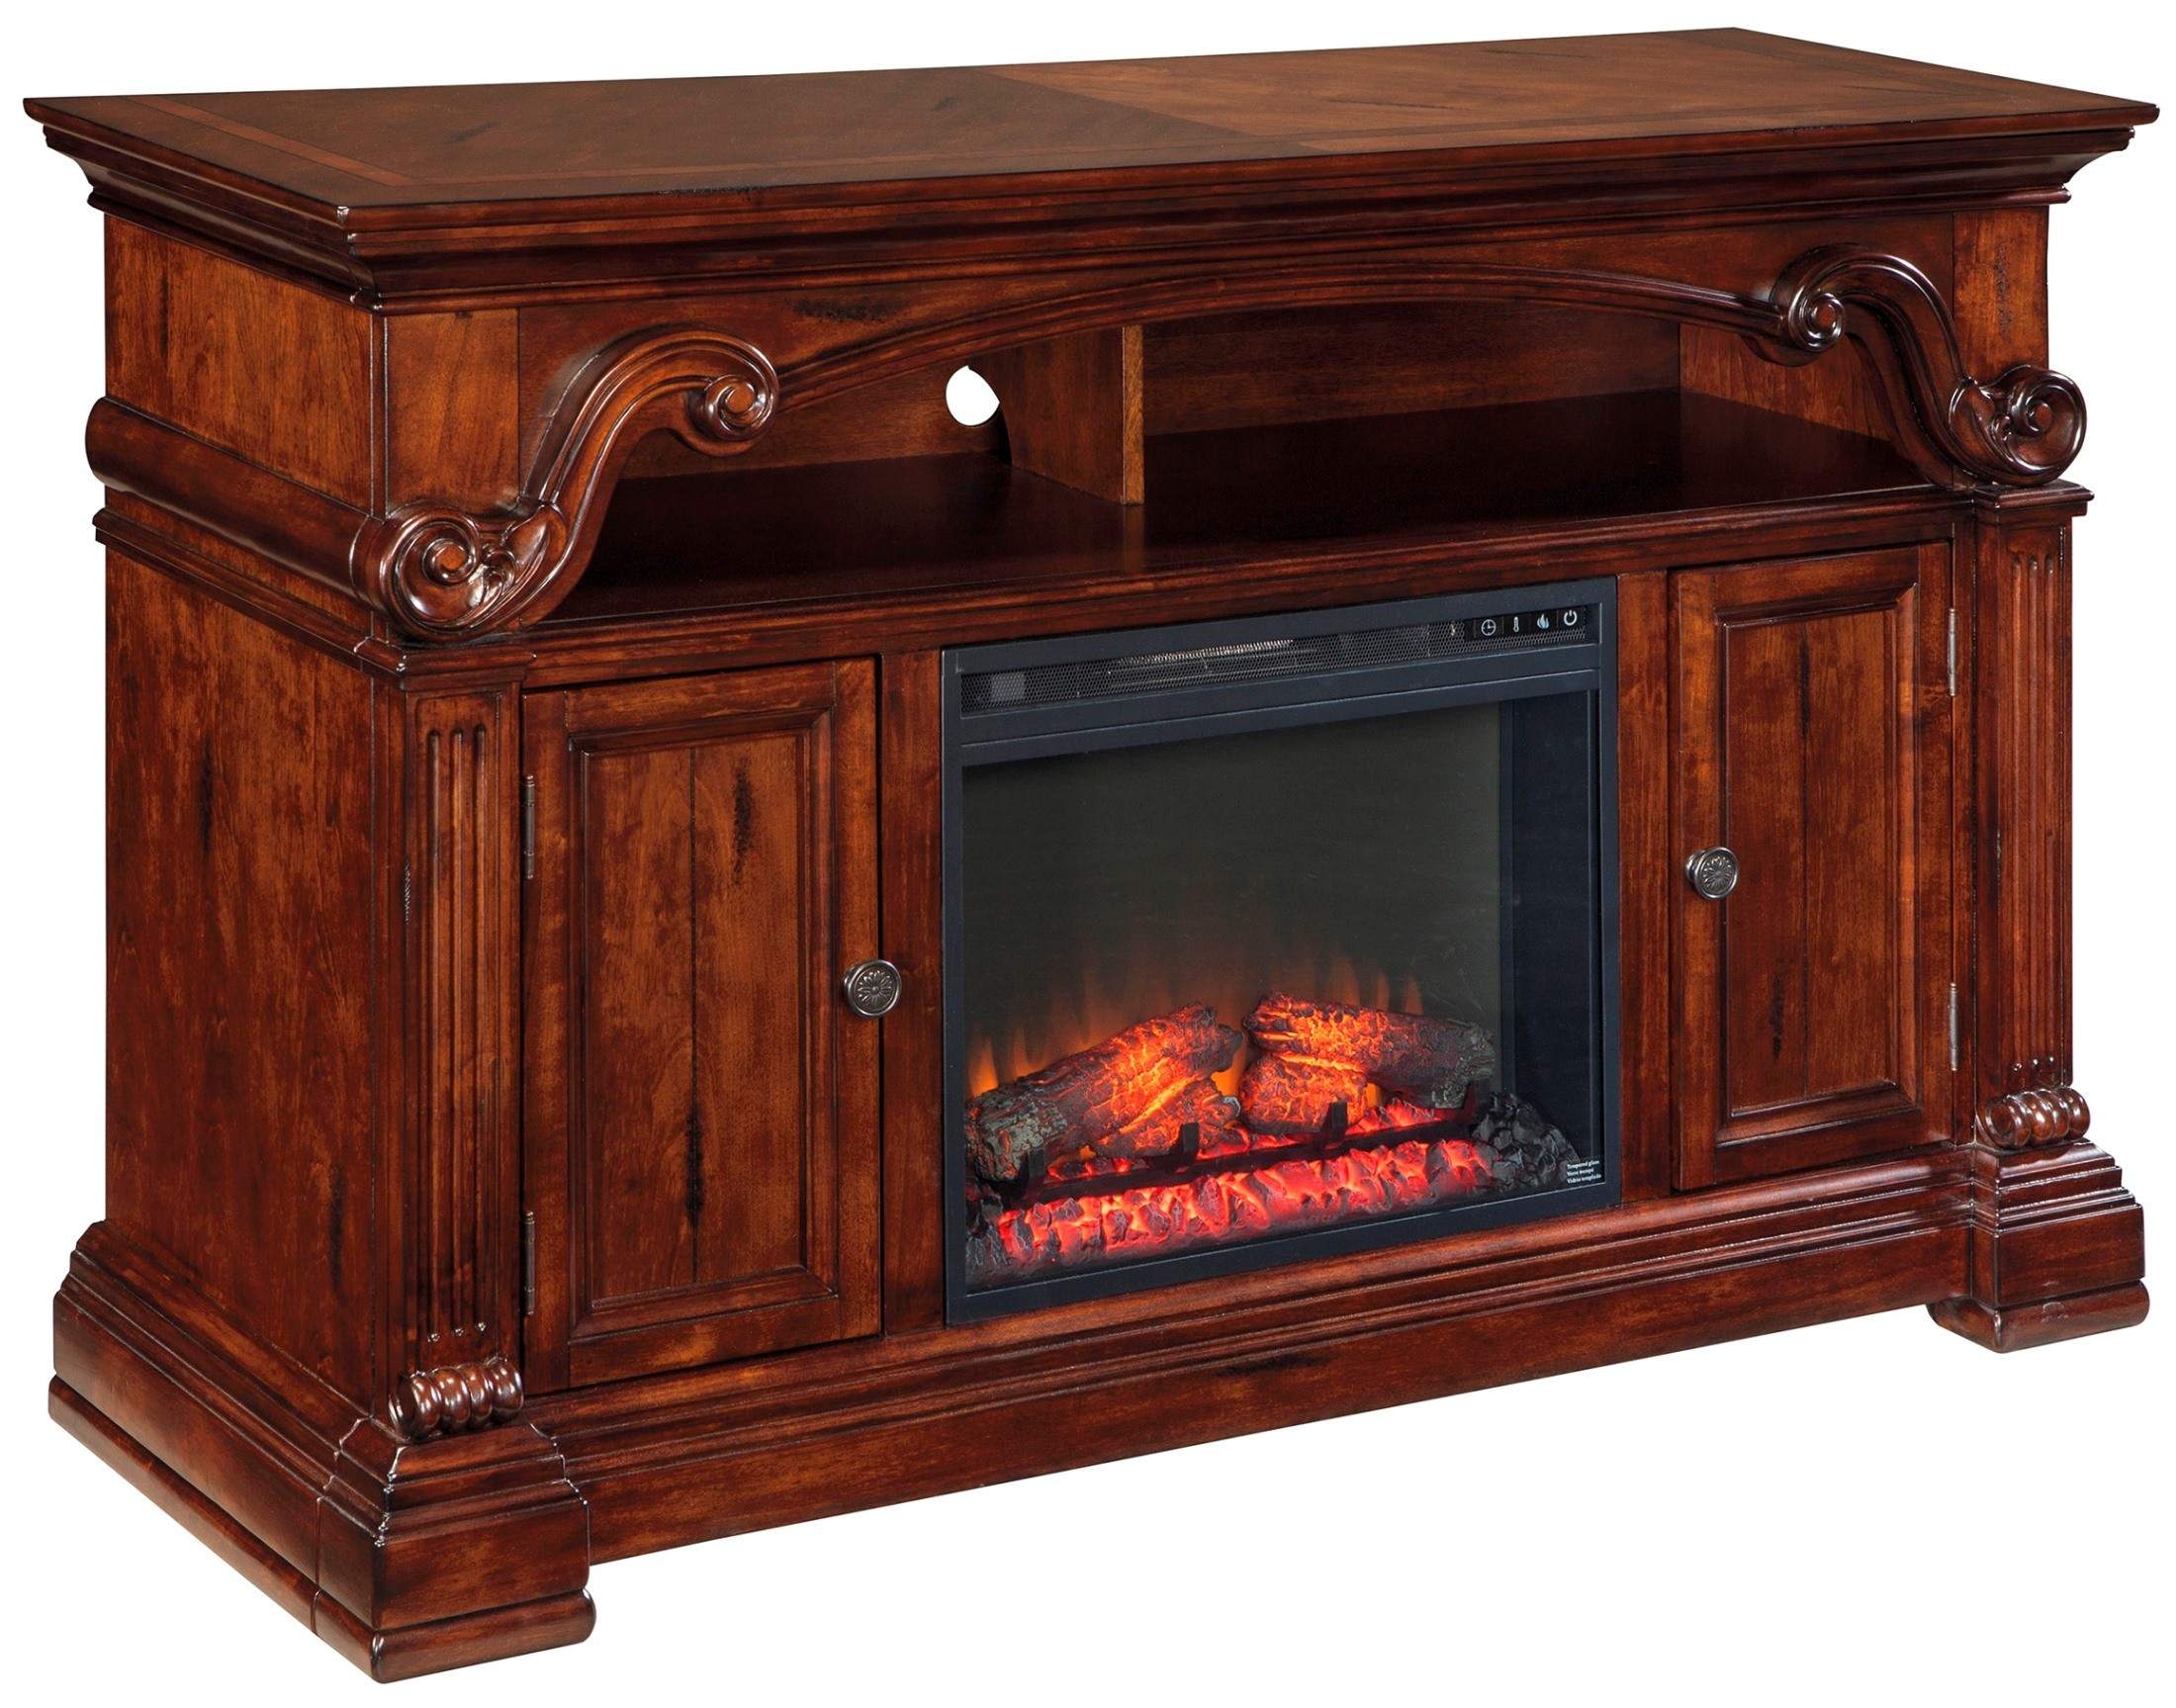 Alymere Lg Tv Stand With Glass Stone Fireplace Insert From Ashley W669 68 W100 02 Coleman